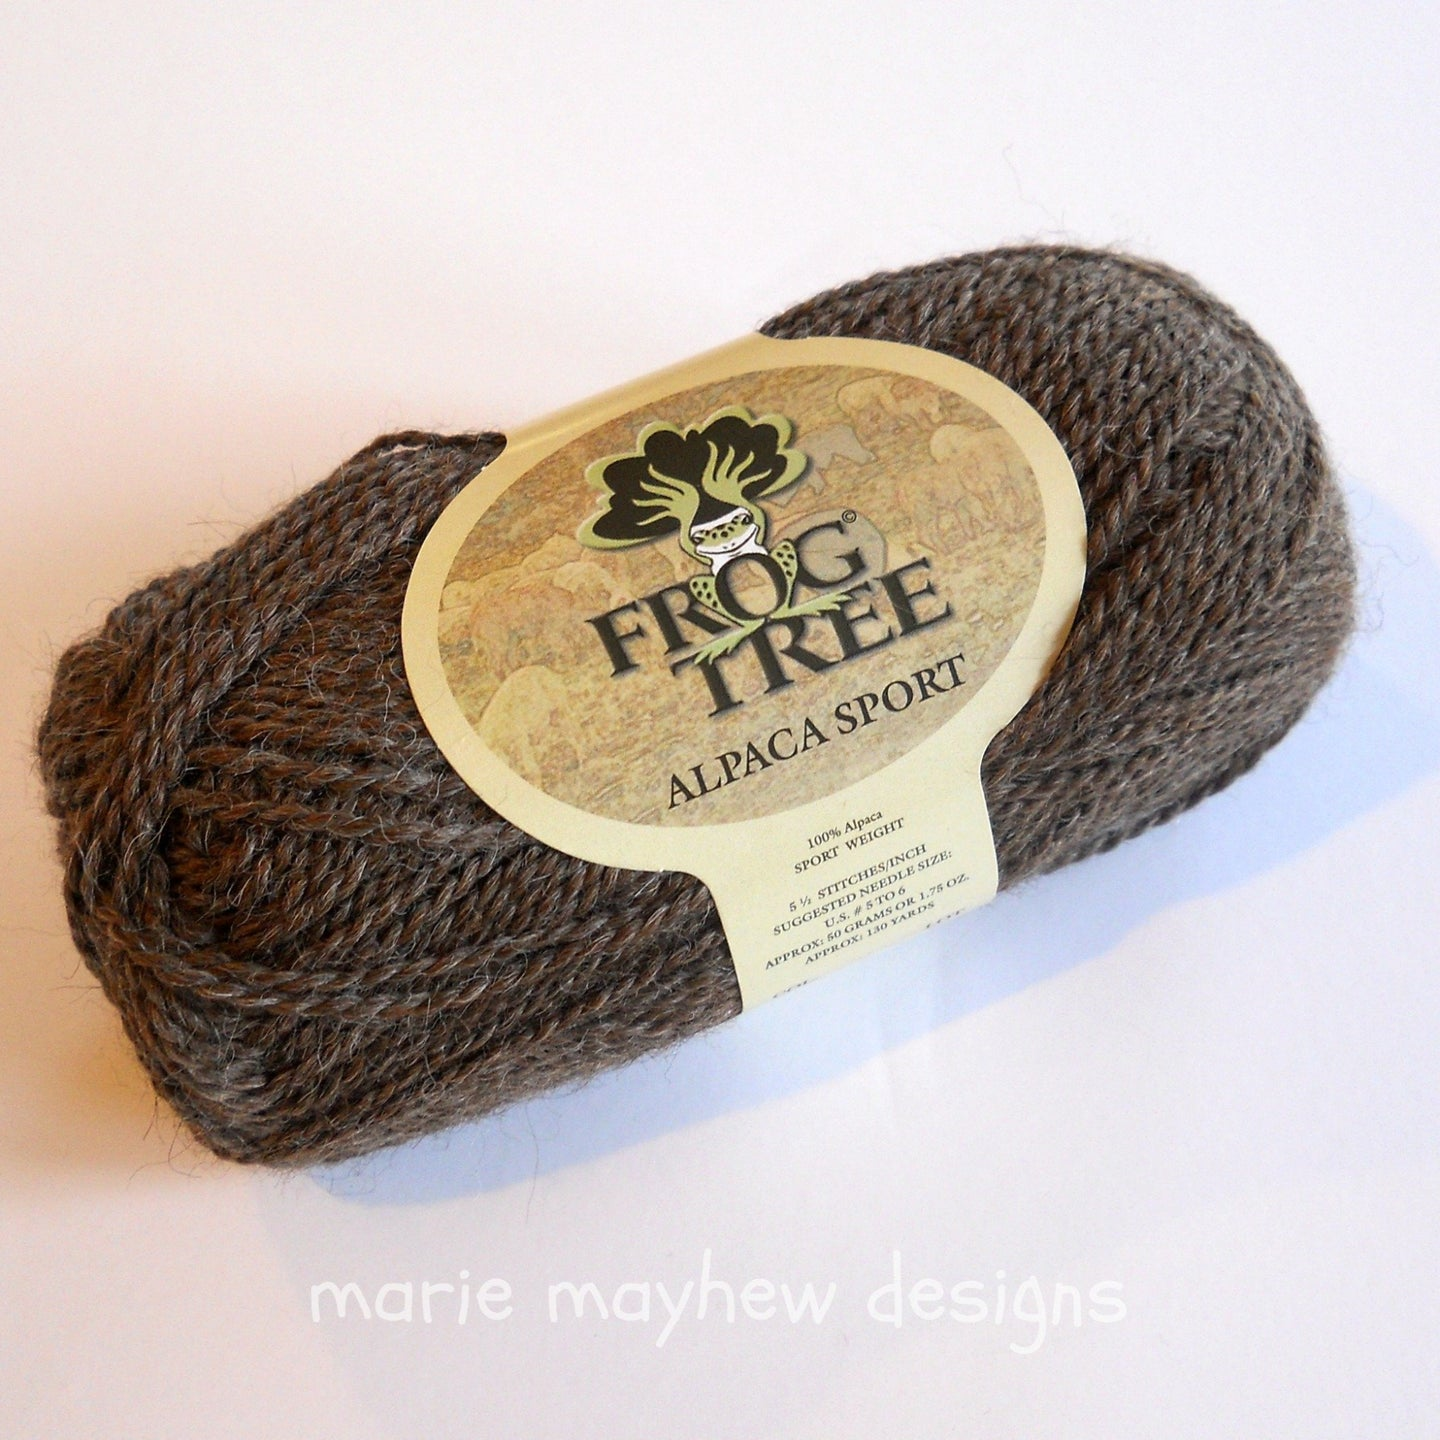 Frog Tree alpaca sport weight yarn, color #008